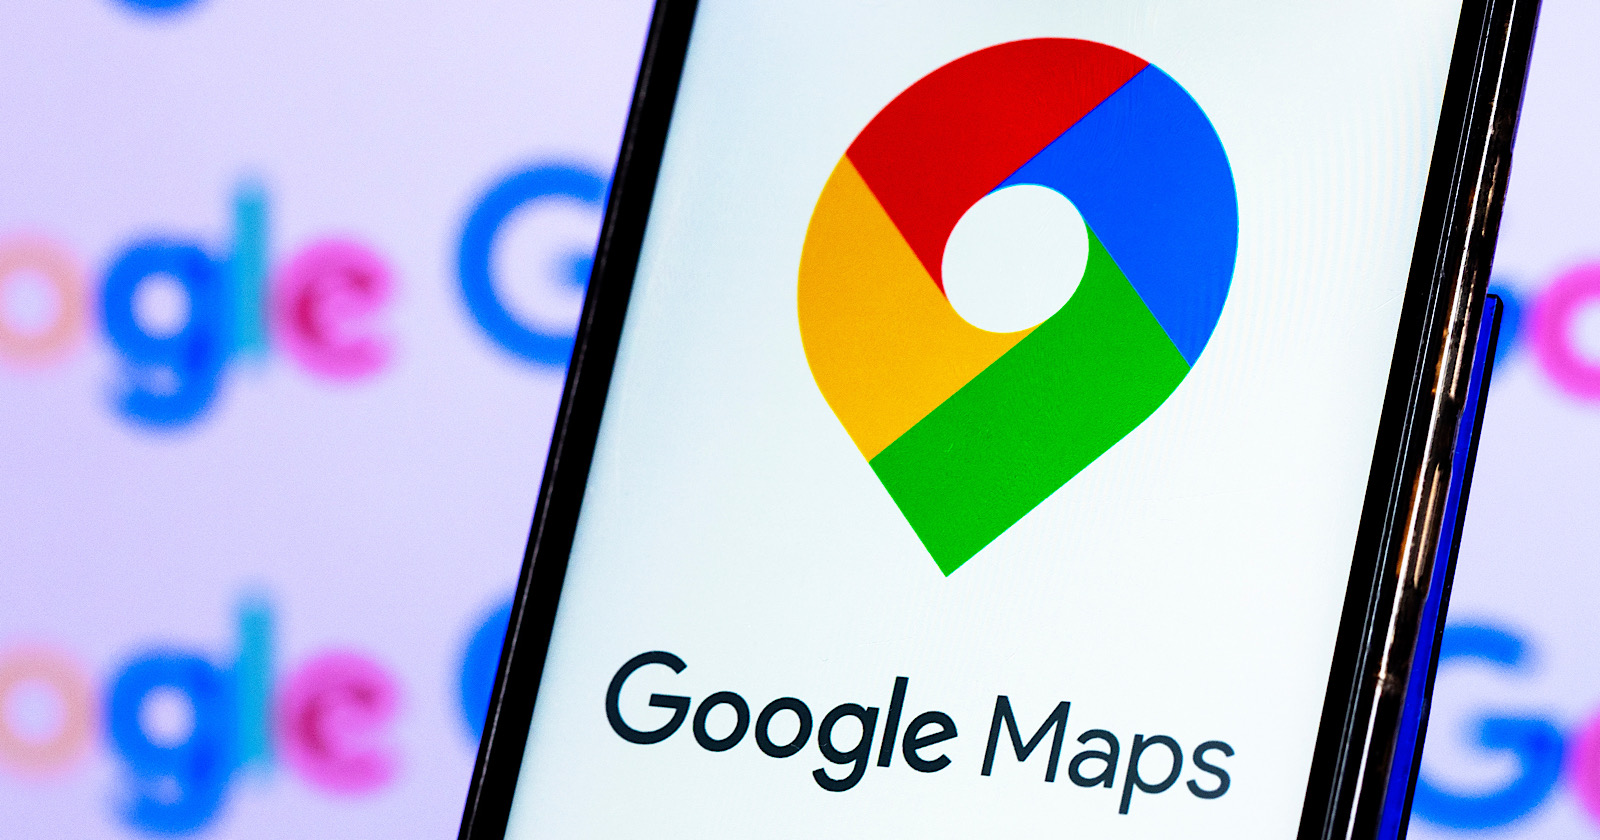 Google Maps Lets Users Add Photos Updates Without Leaving a Review - Search Engine Journal